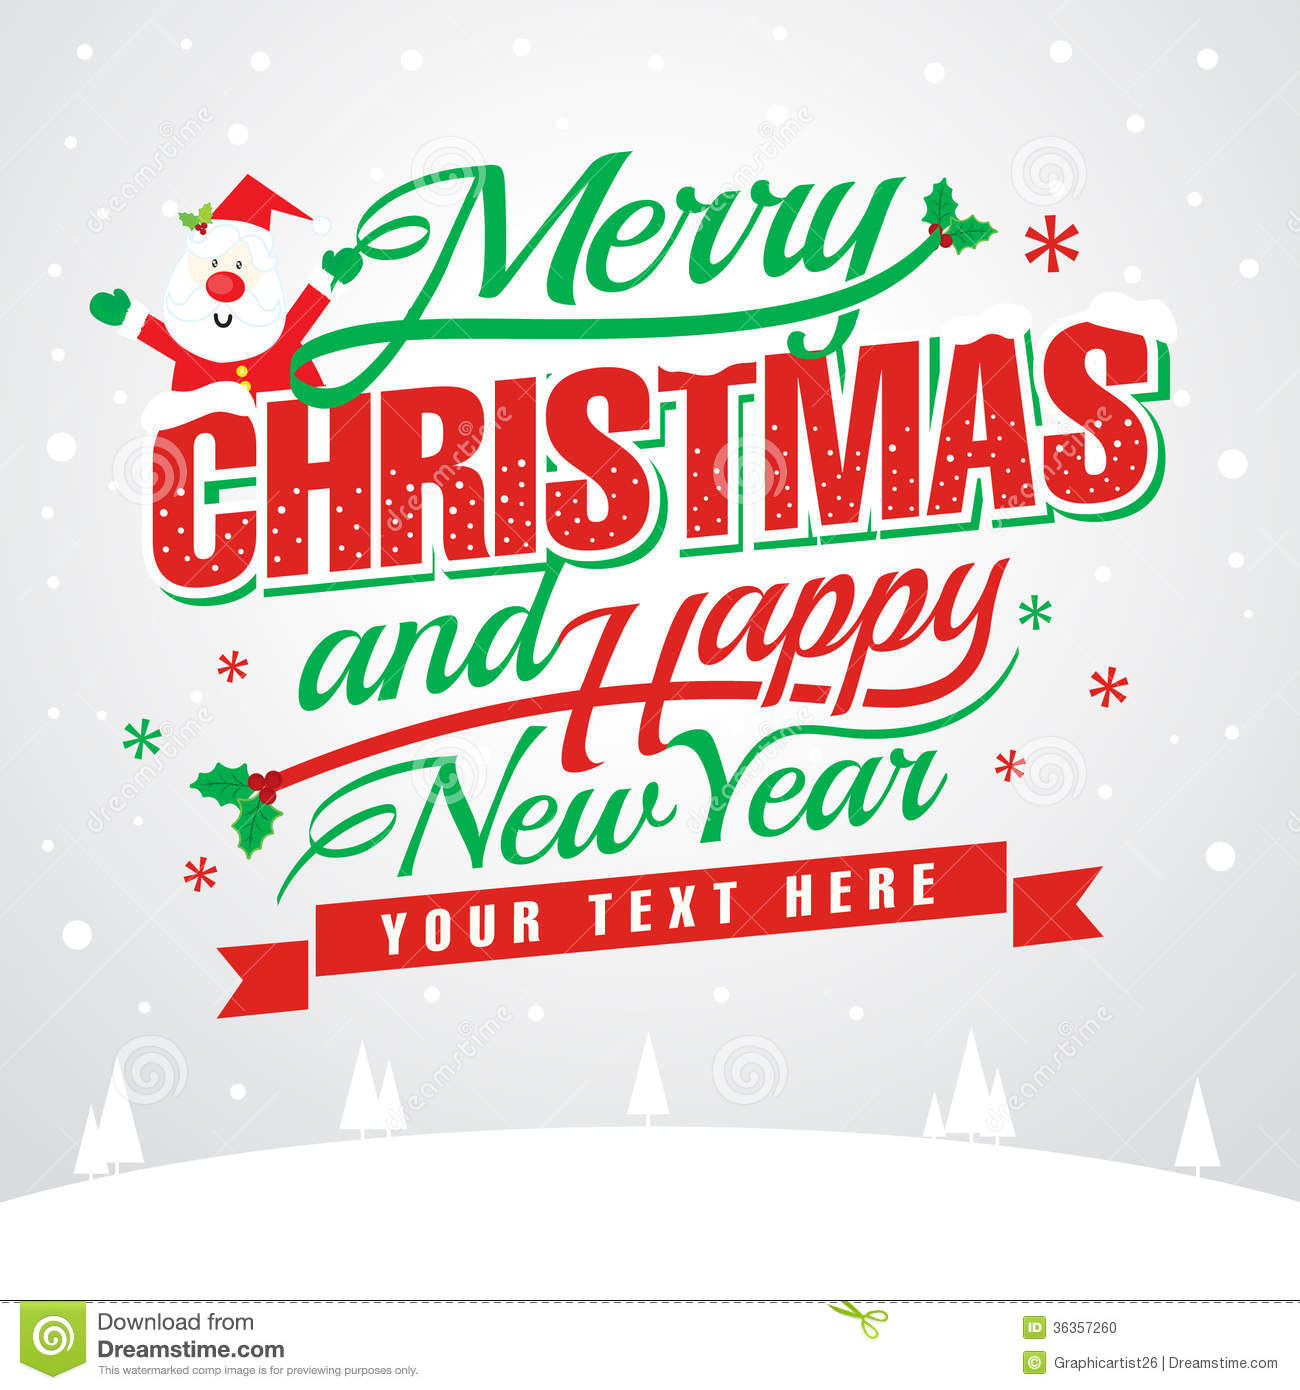 merry christmas and happy new year stock illustration illustration of placard design 36357260 dreamstime com